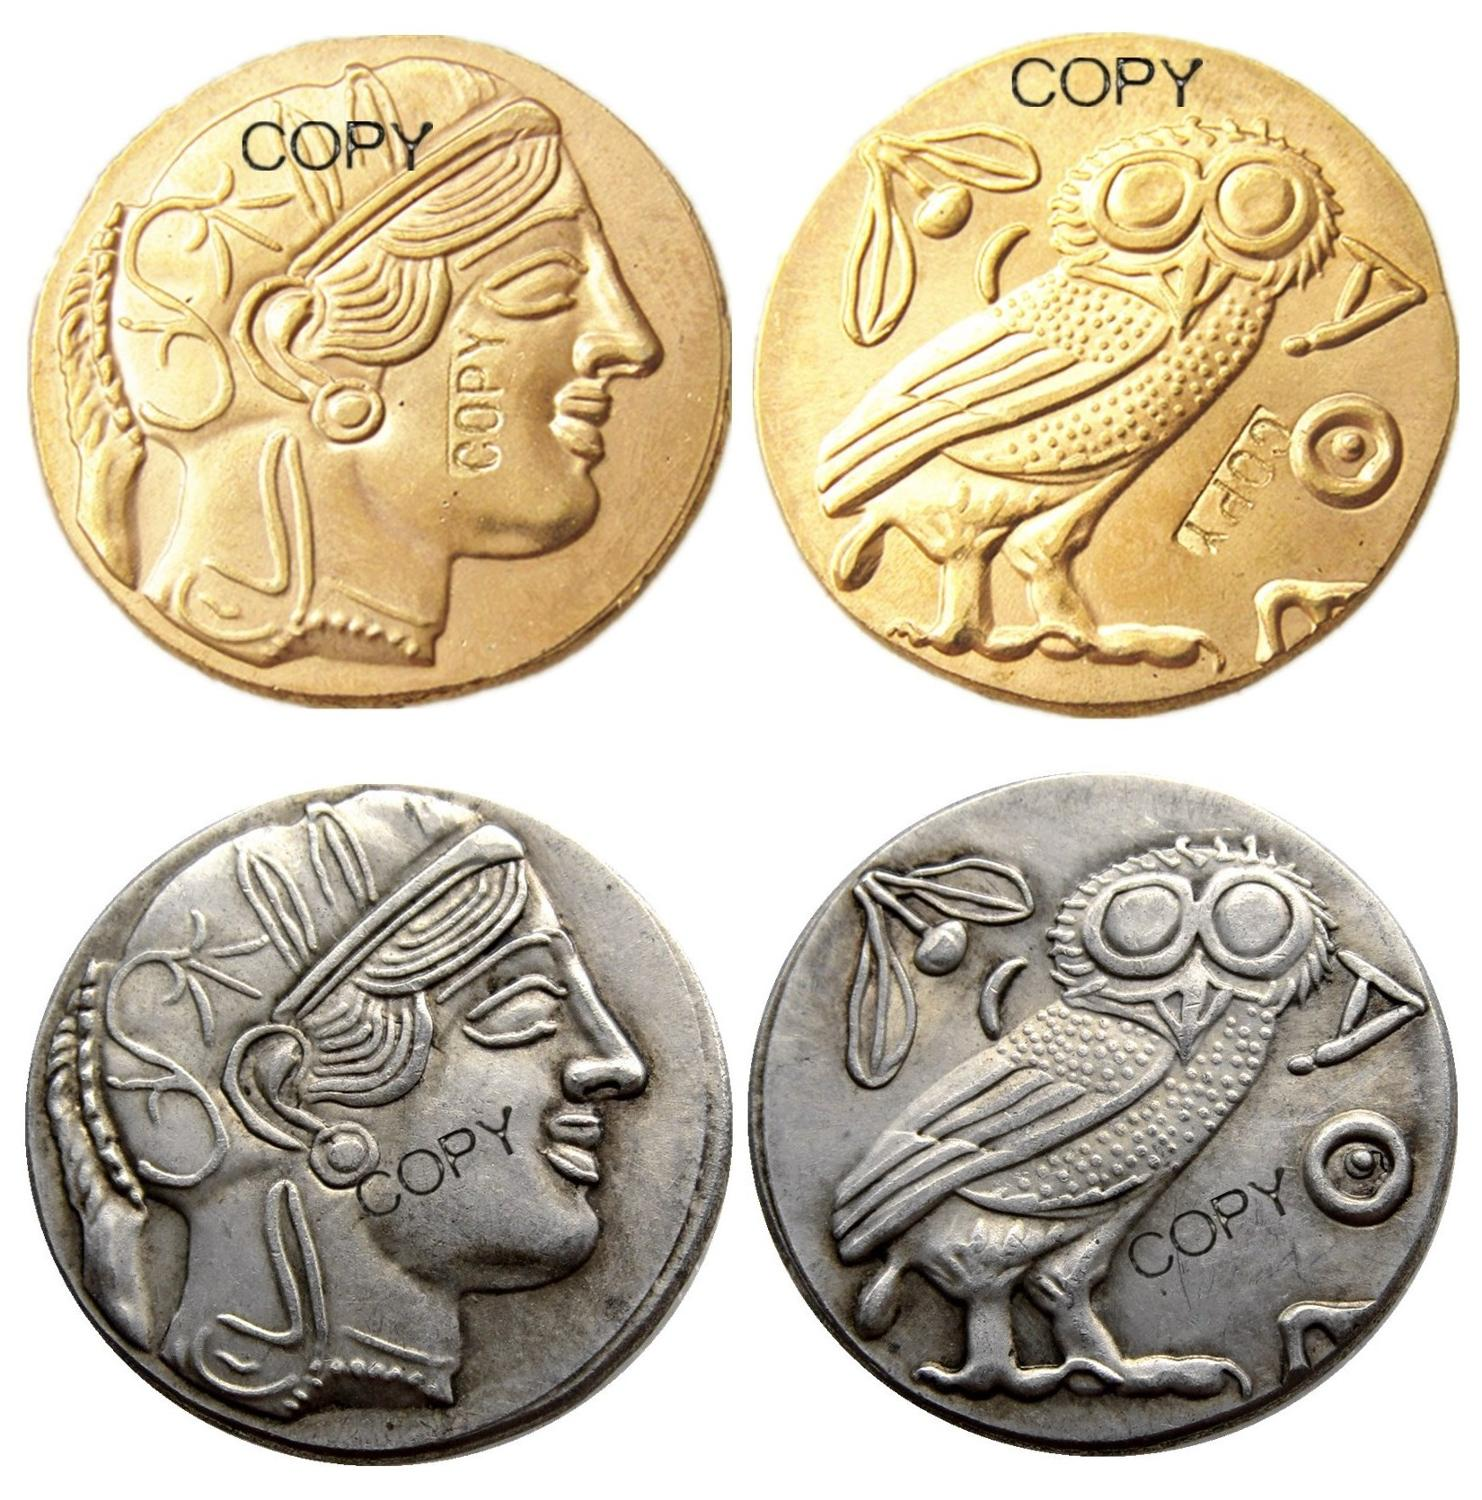 G(04)Ancient Athens Greek Silver Drachm - Atena Greece Silver Plated/Gold Plated copy coin